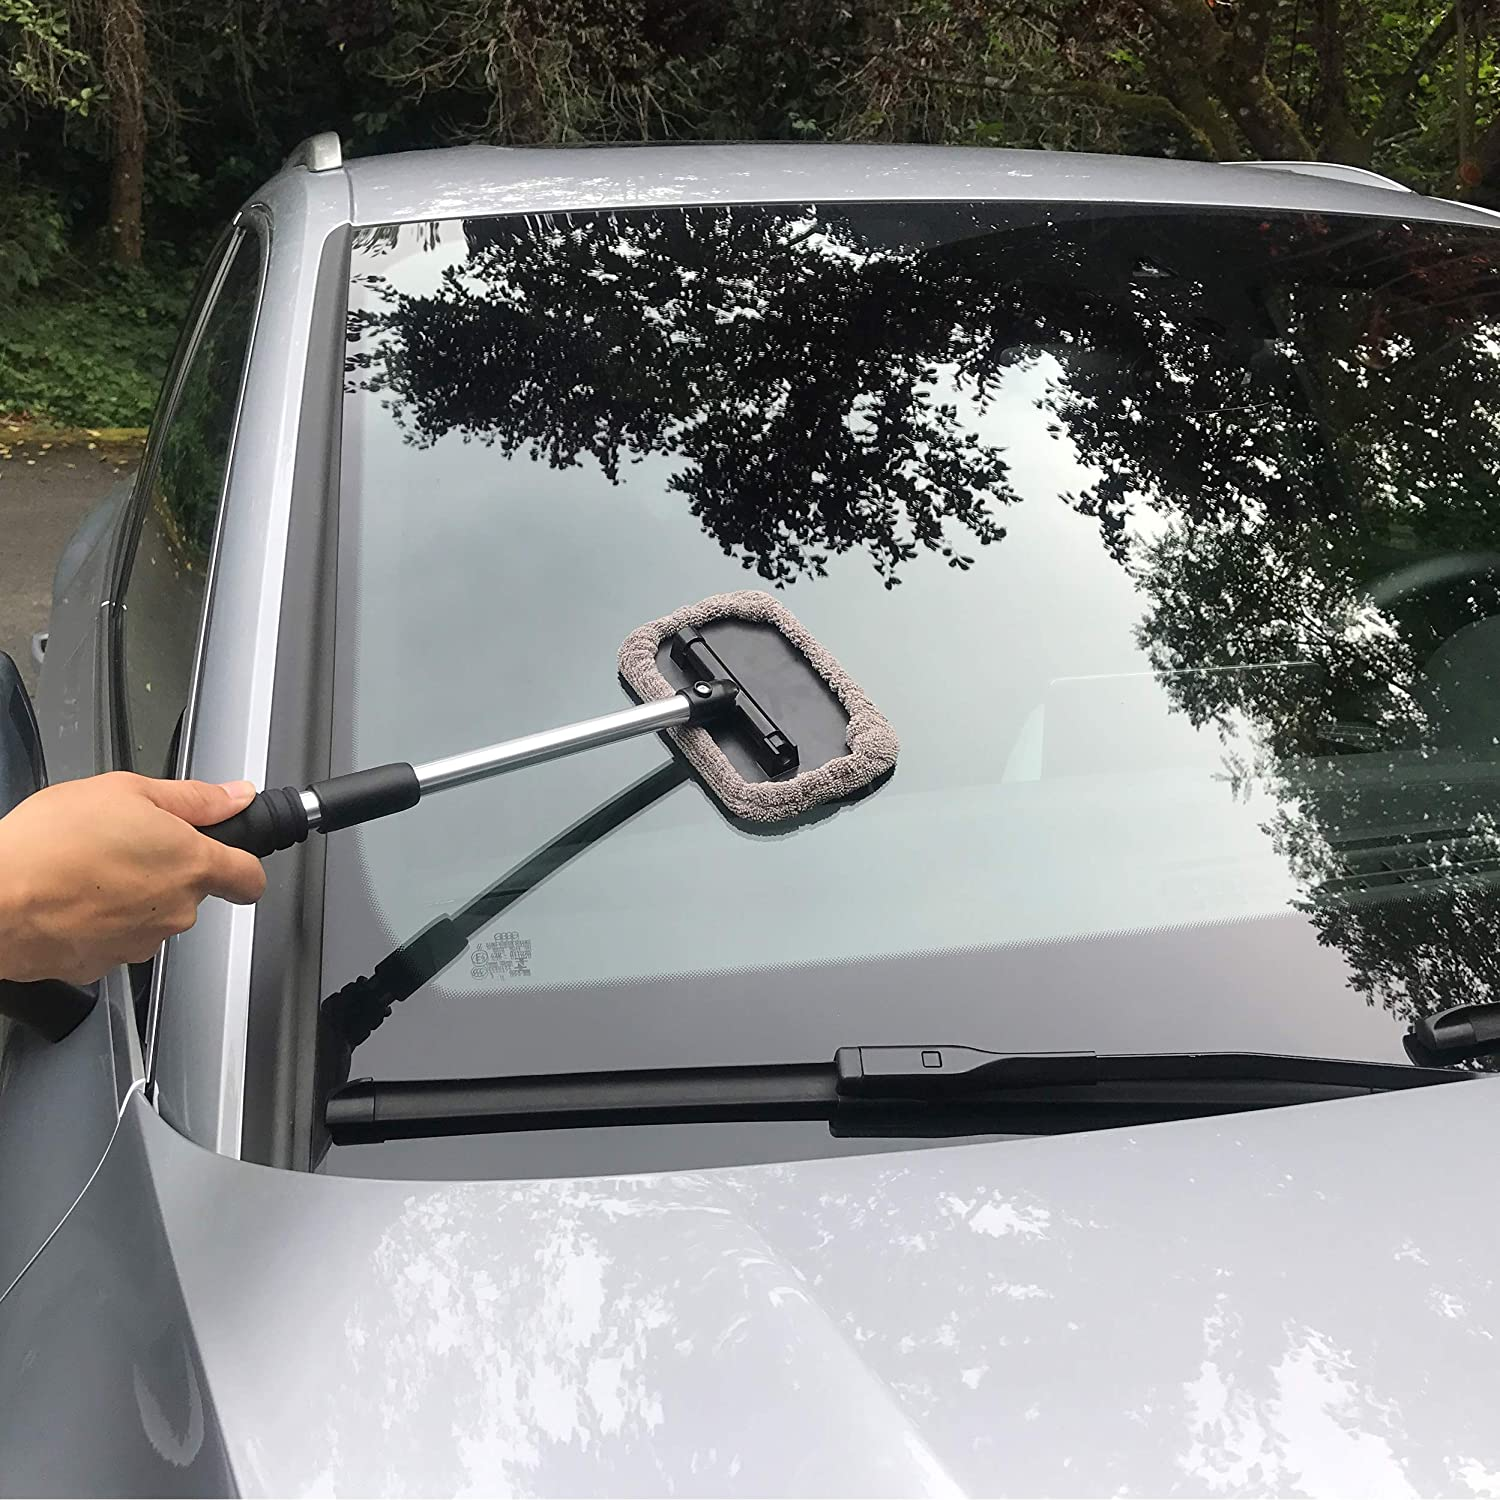 Polyte Pivoting Windshield Glass Cleaning Tool Extendable Aluminum Handle w//Microfiber Covers